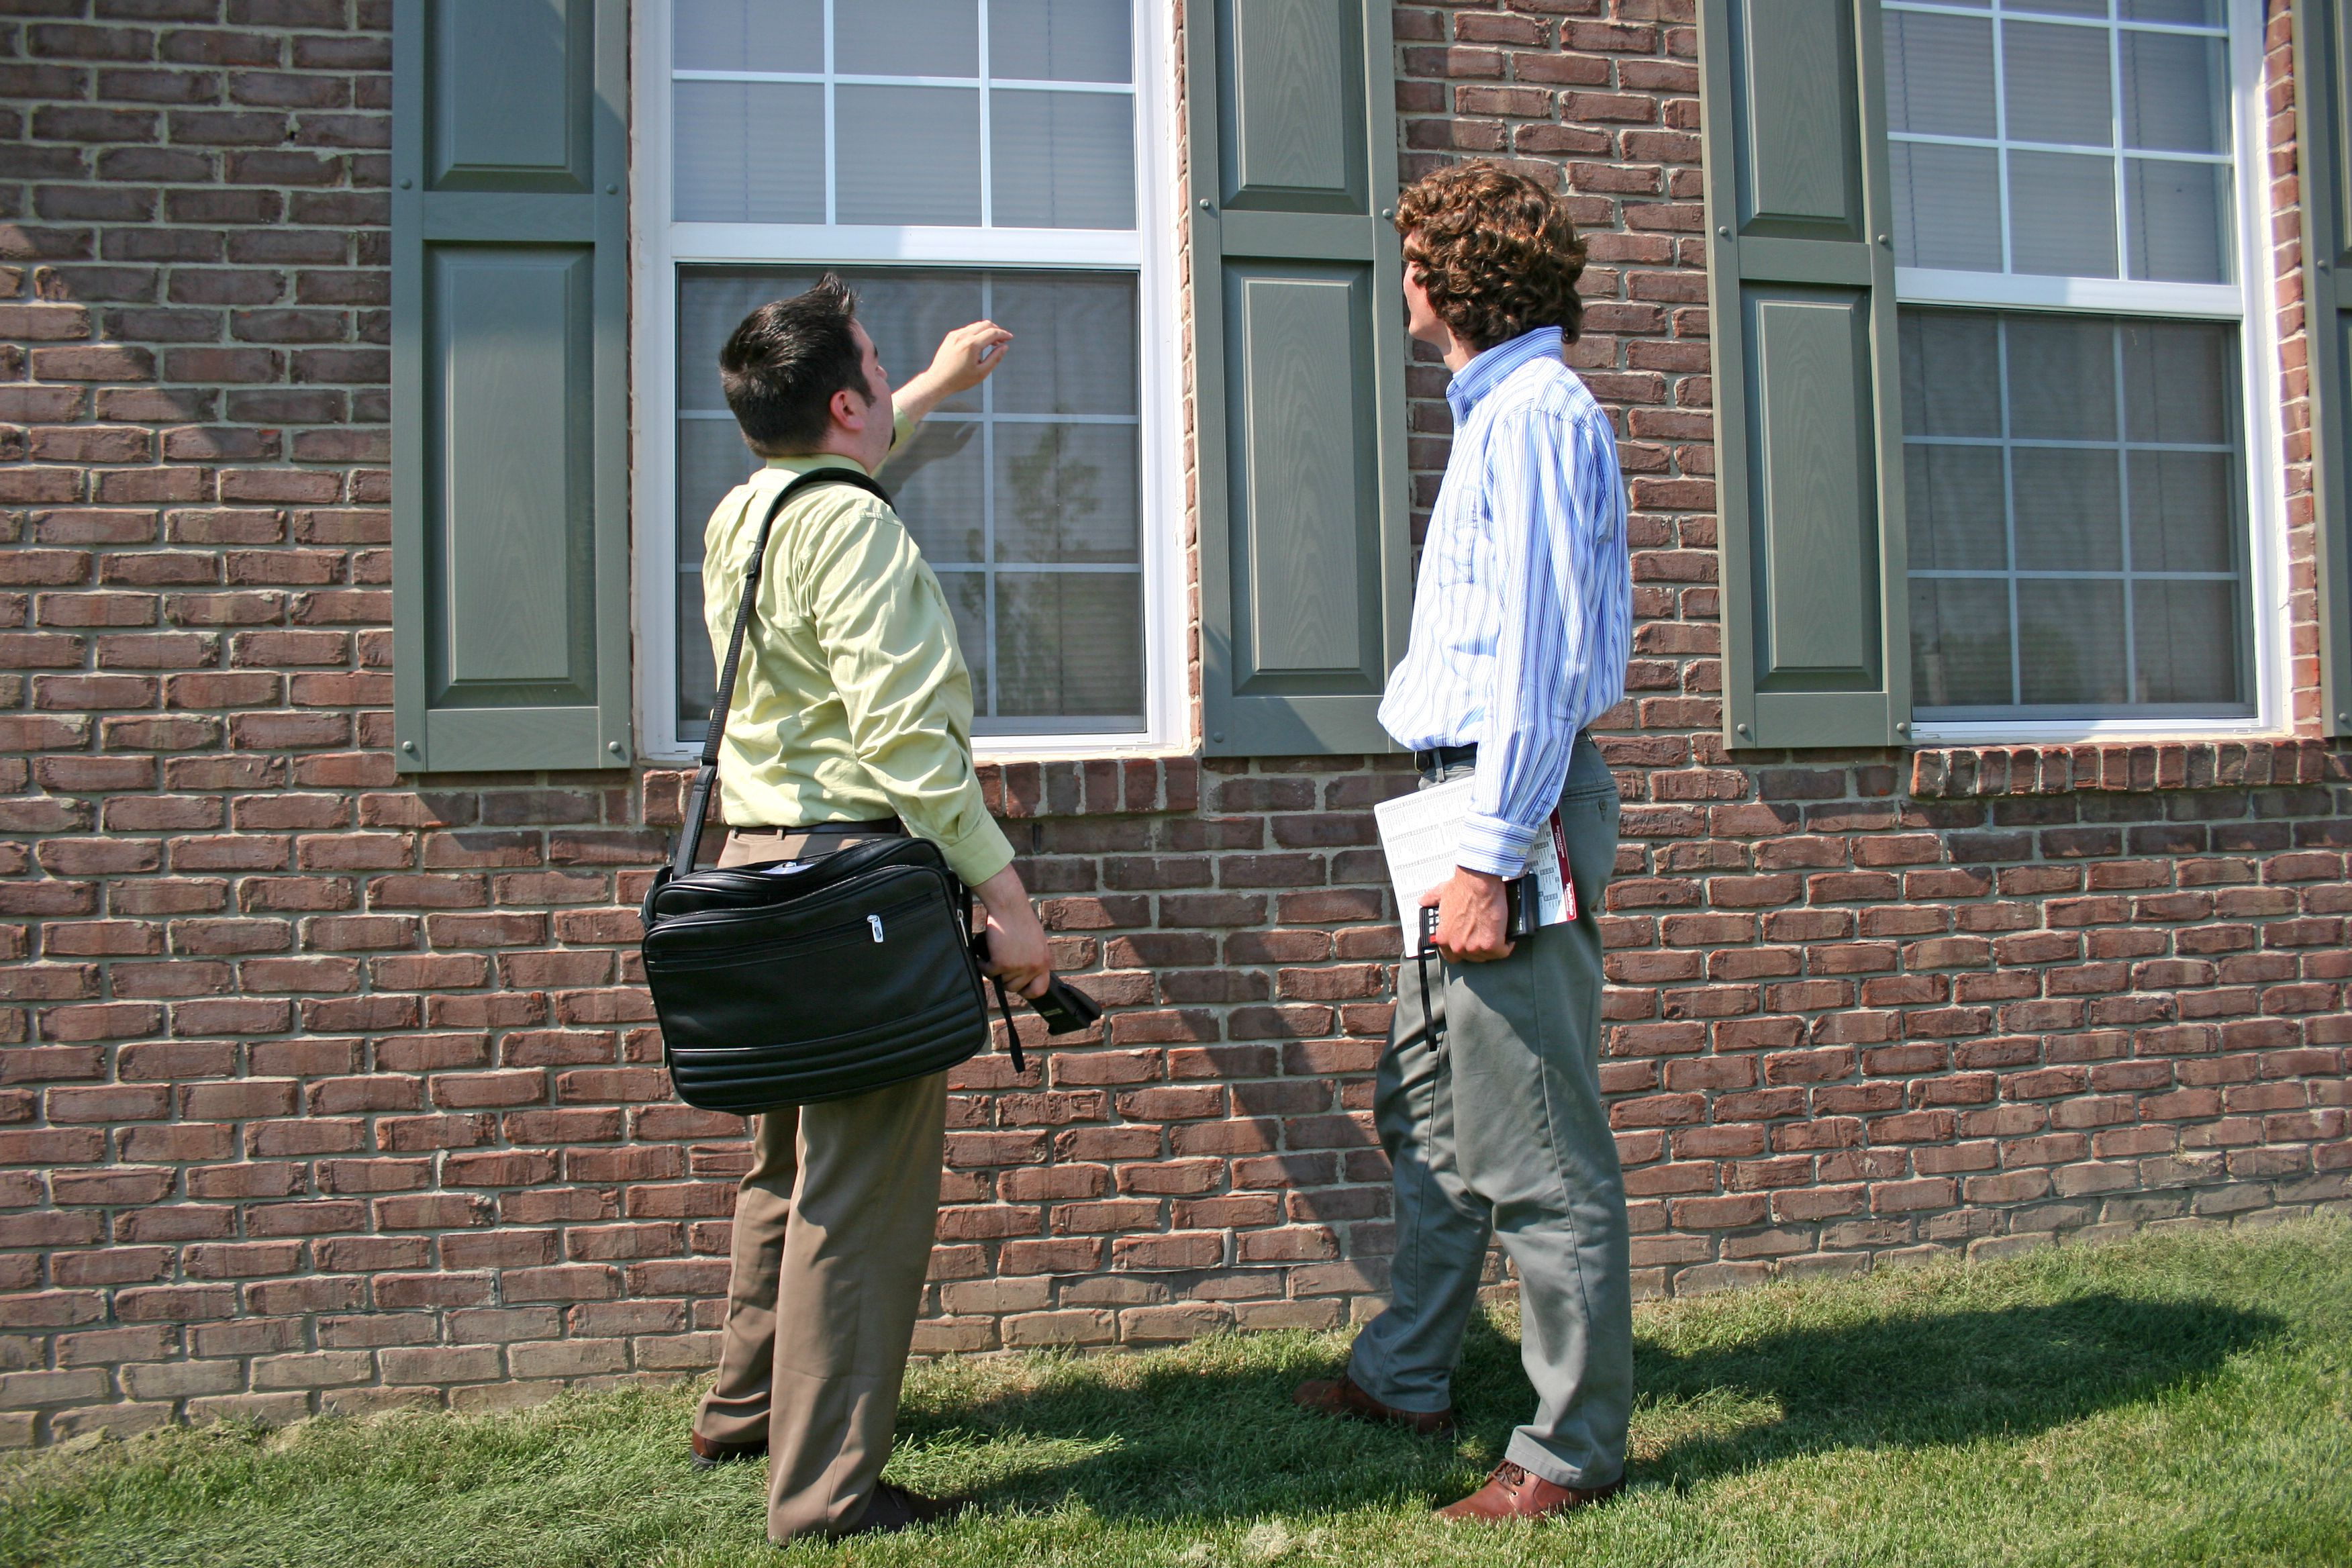 Property appraiser on outside of house.